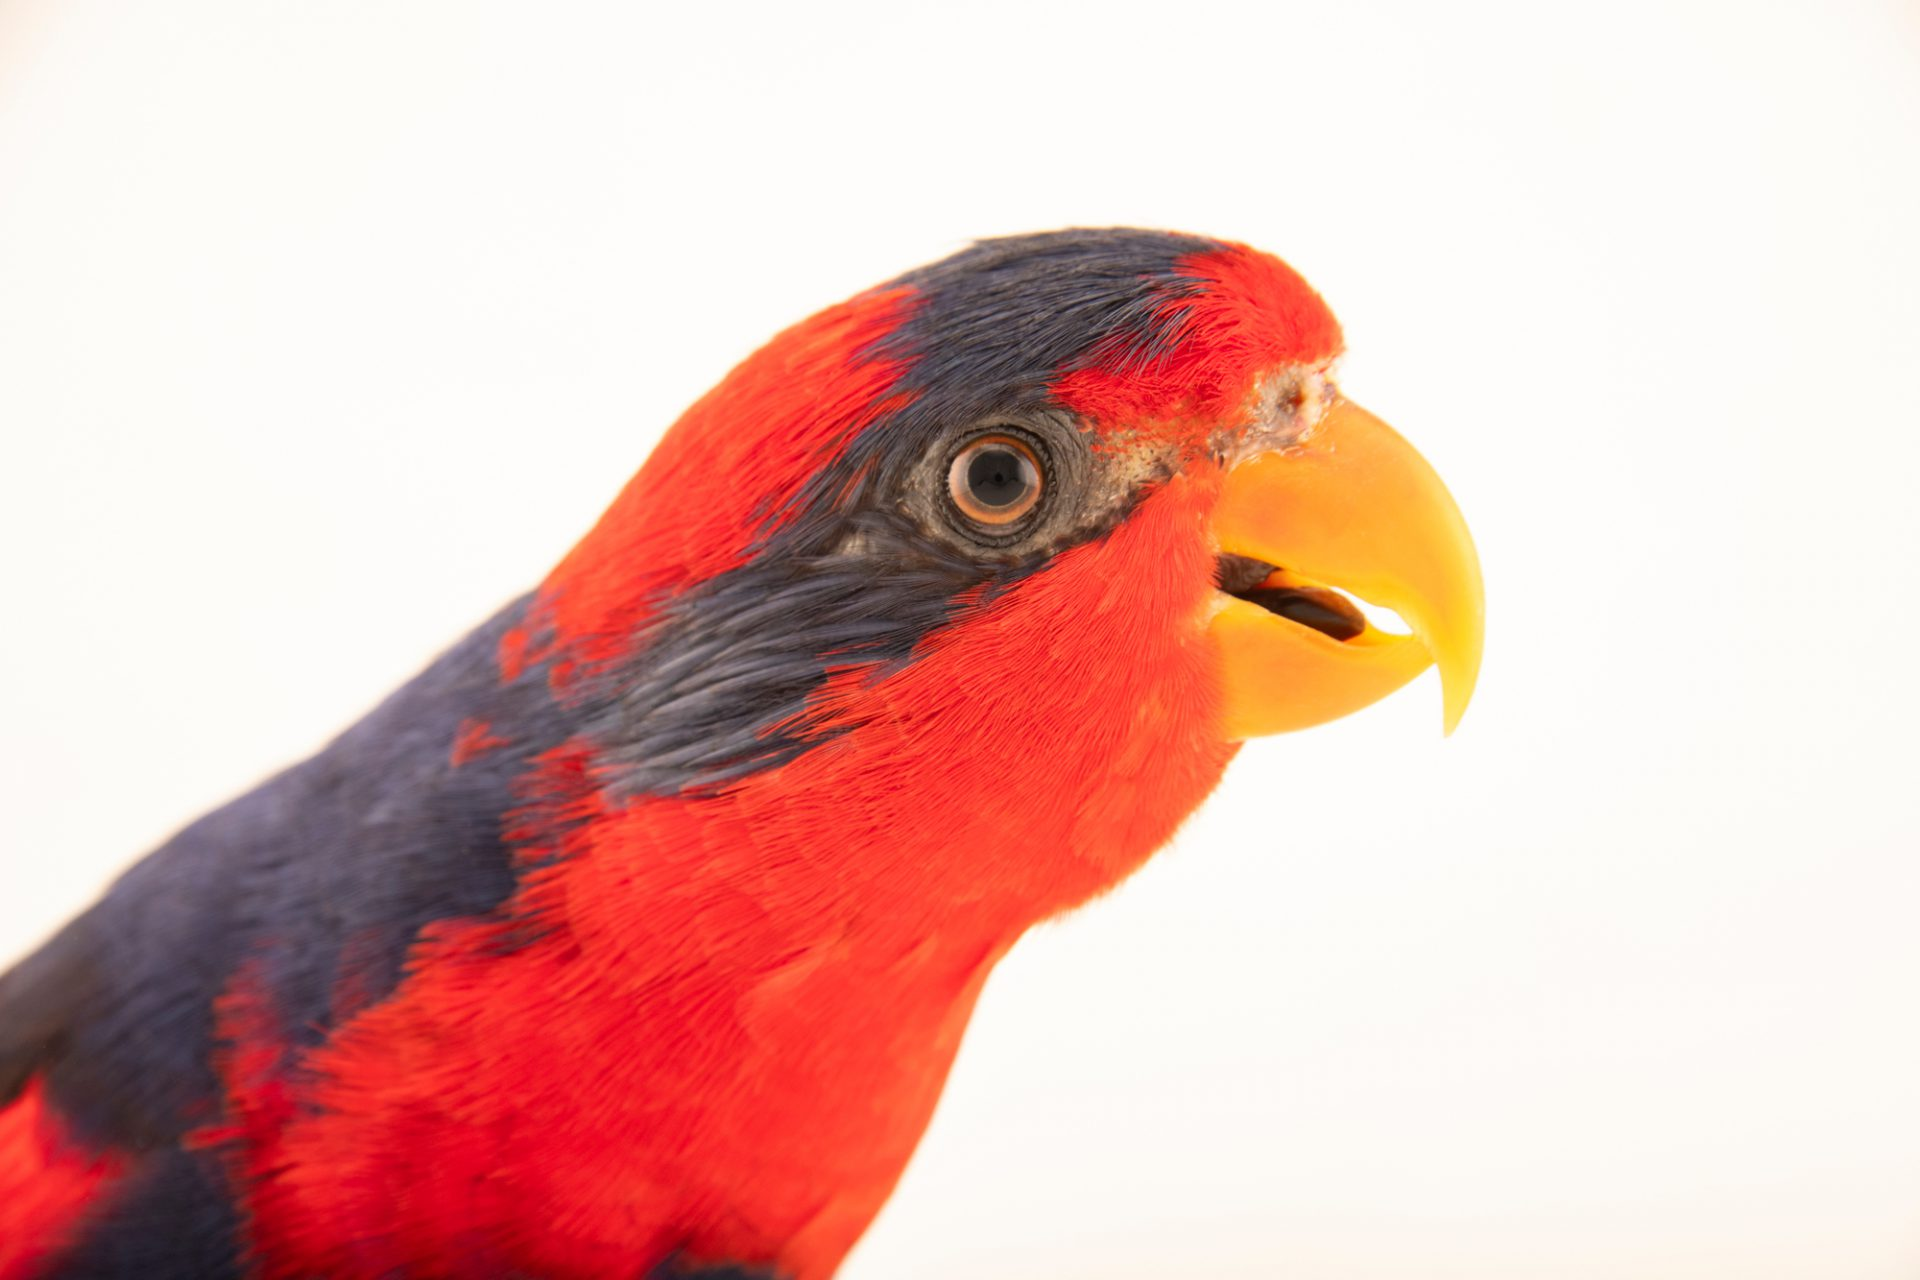 Photo: An endangered red and blue lory, Eos histrio talautensis, at the Talarak Foundation.